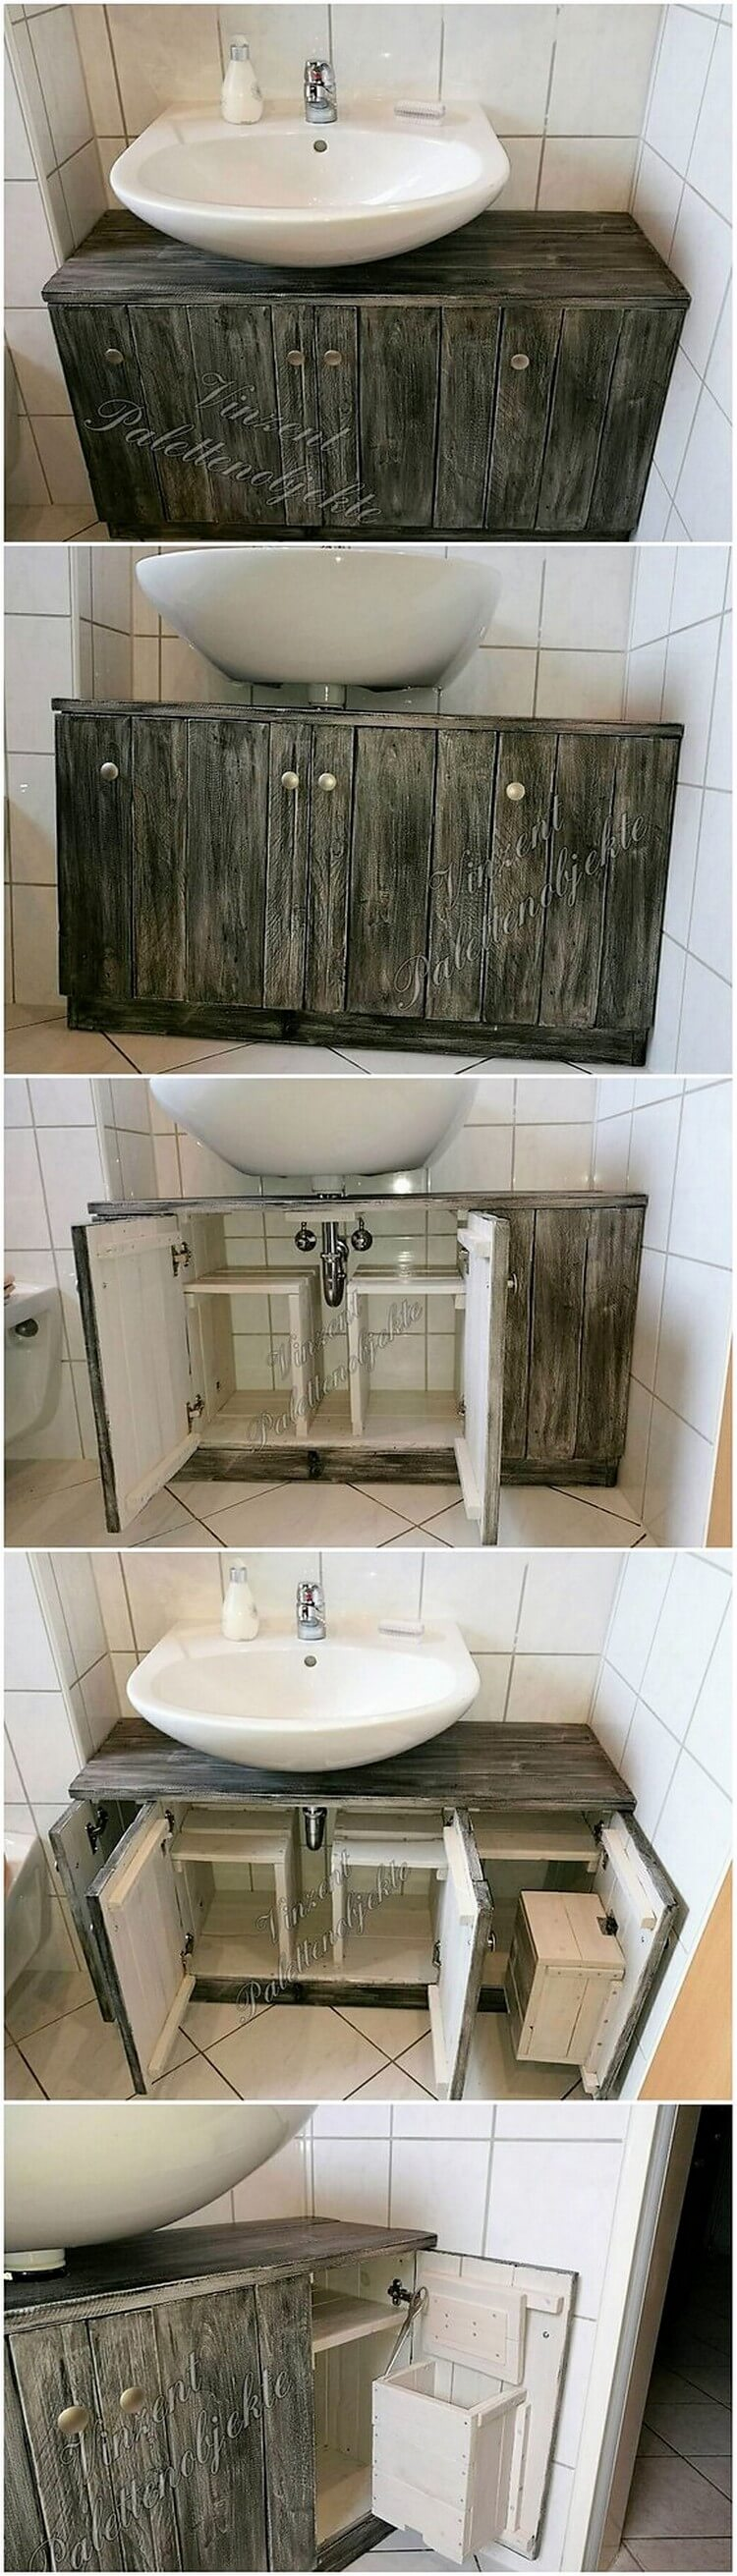 Wood Pallets Toilet Sink with Storage Space